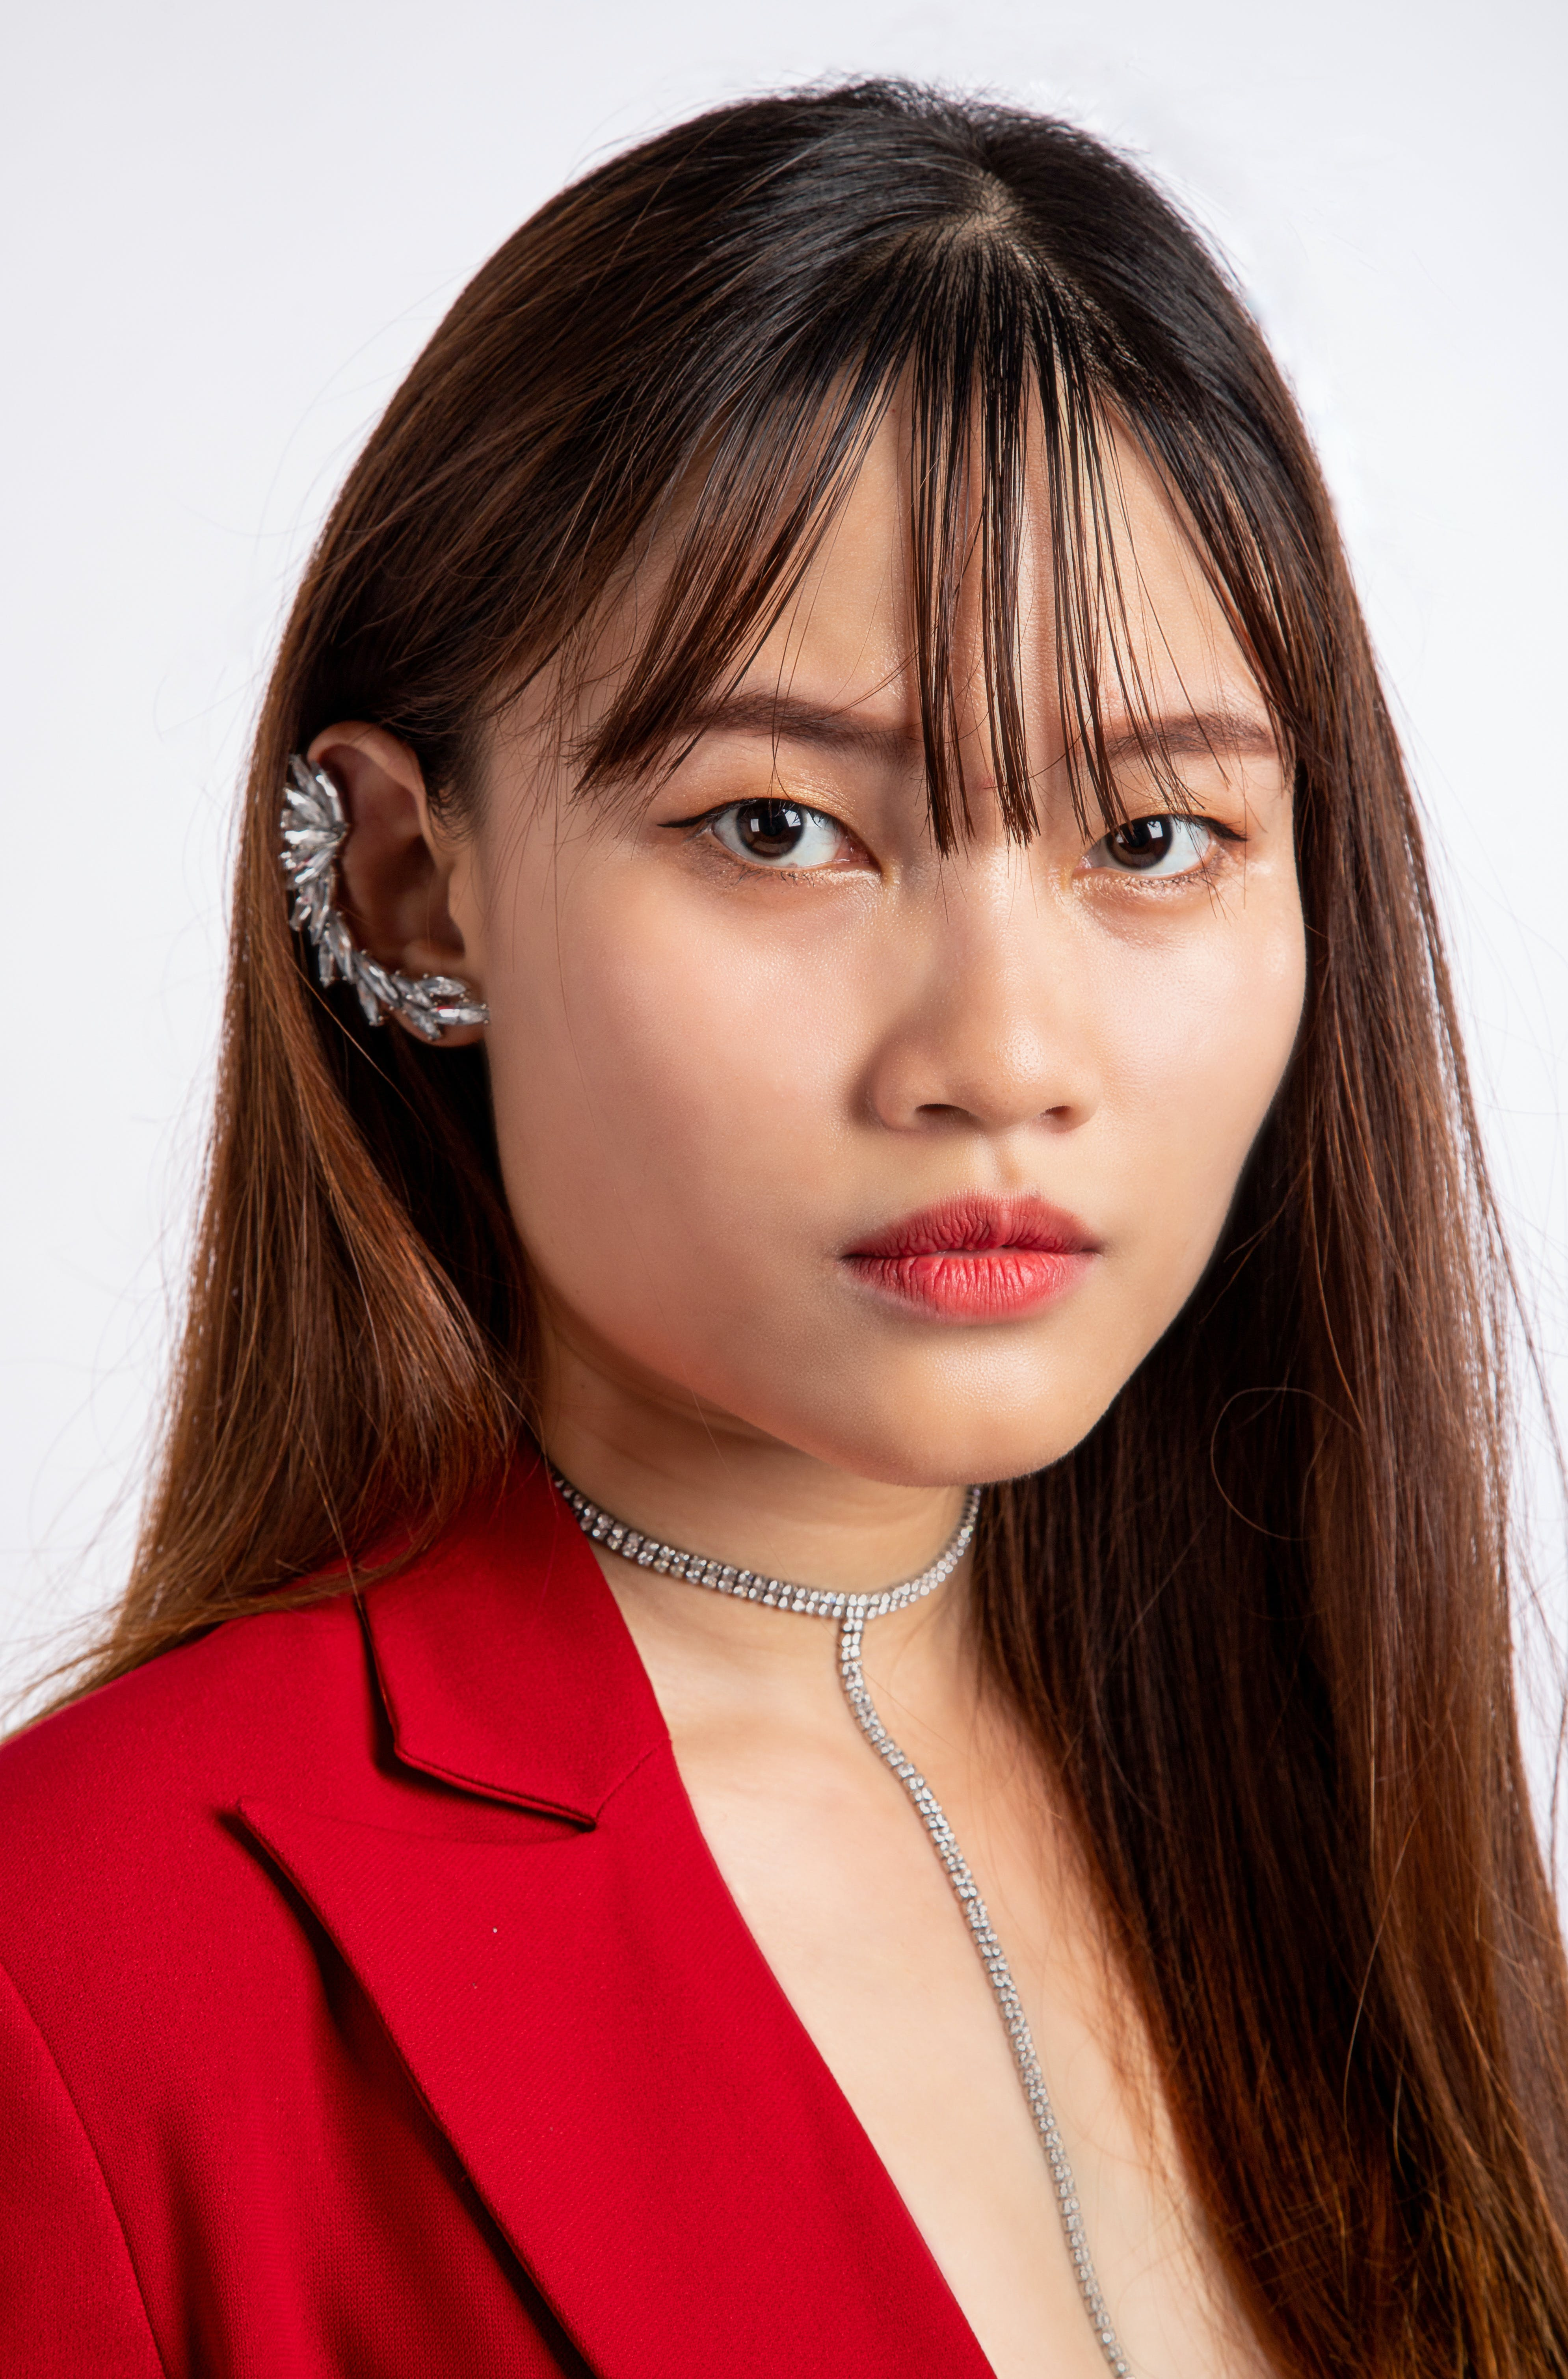 Woman Wearing Necklace and Earring